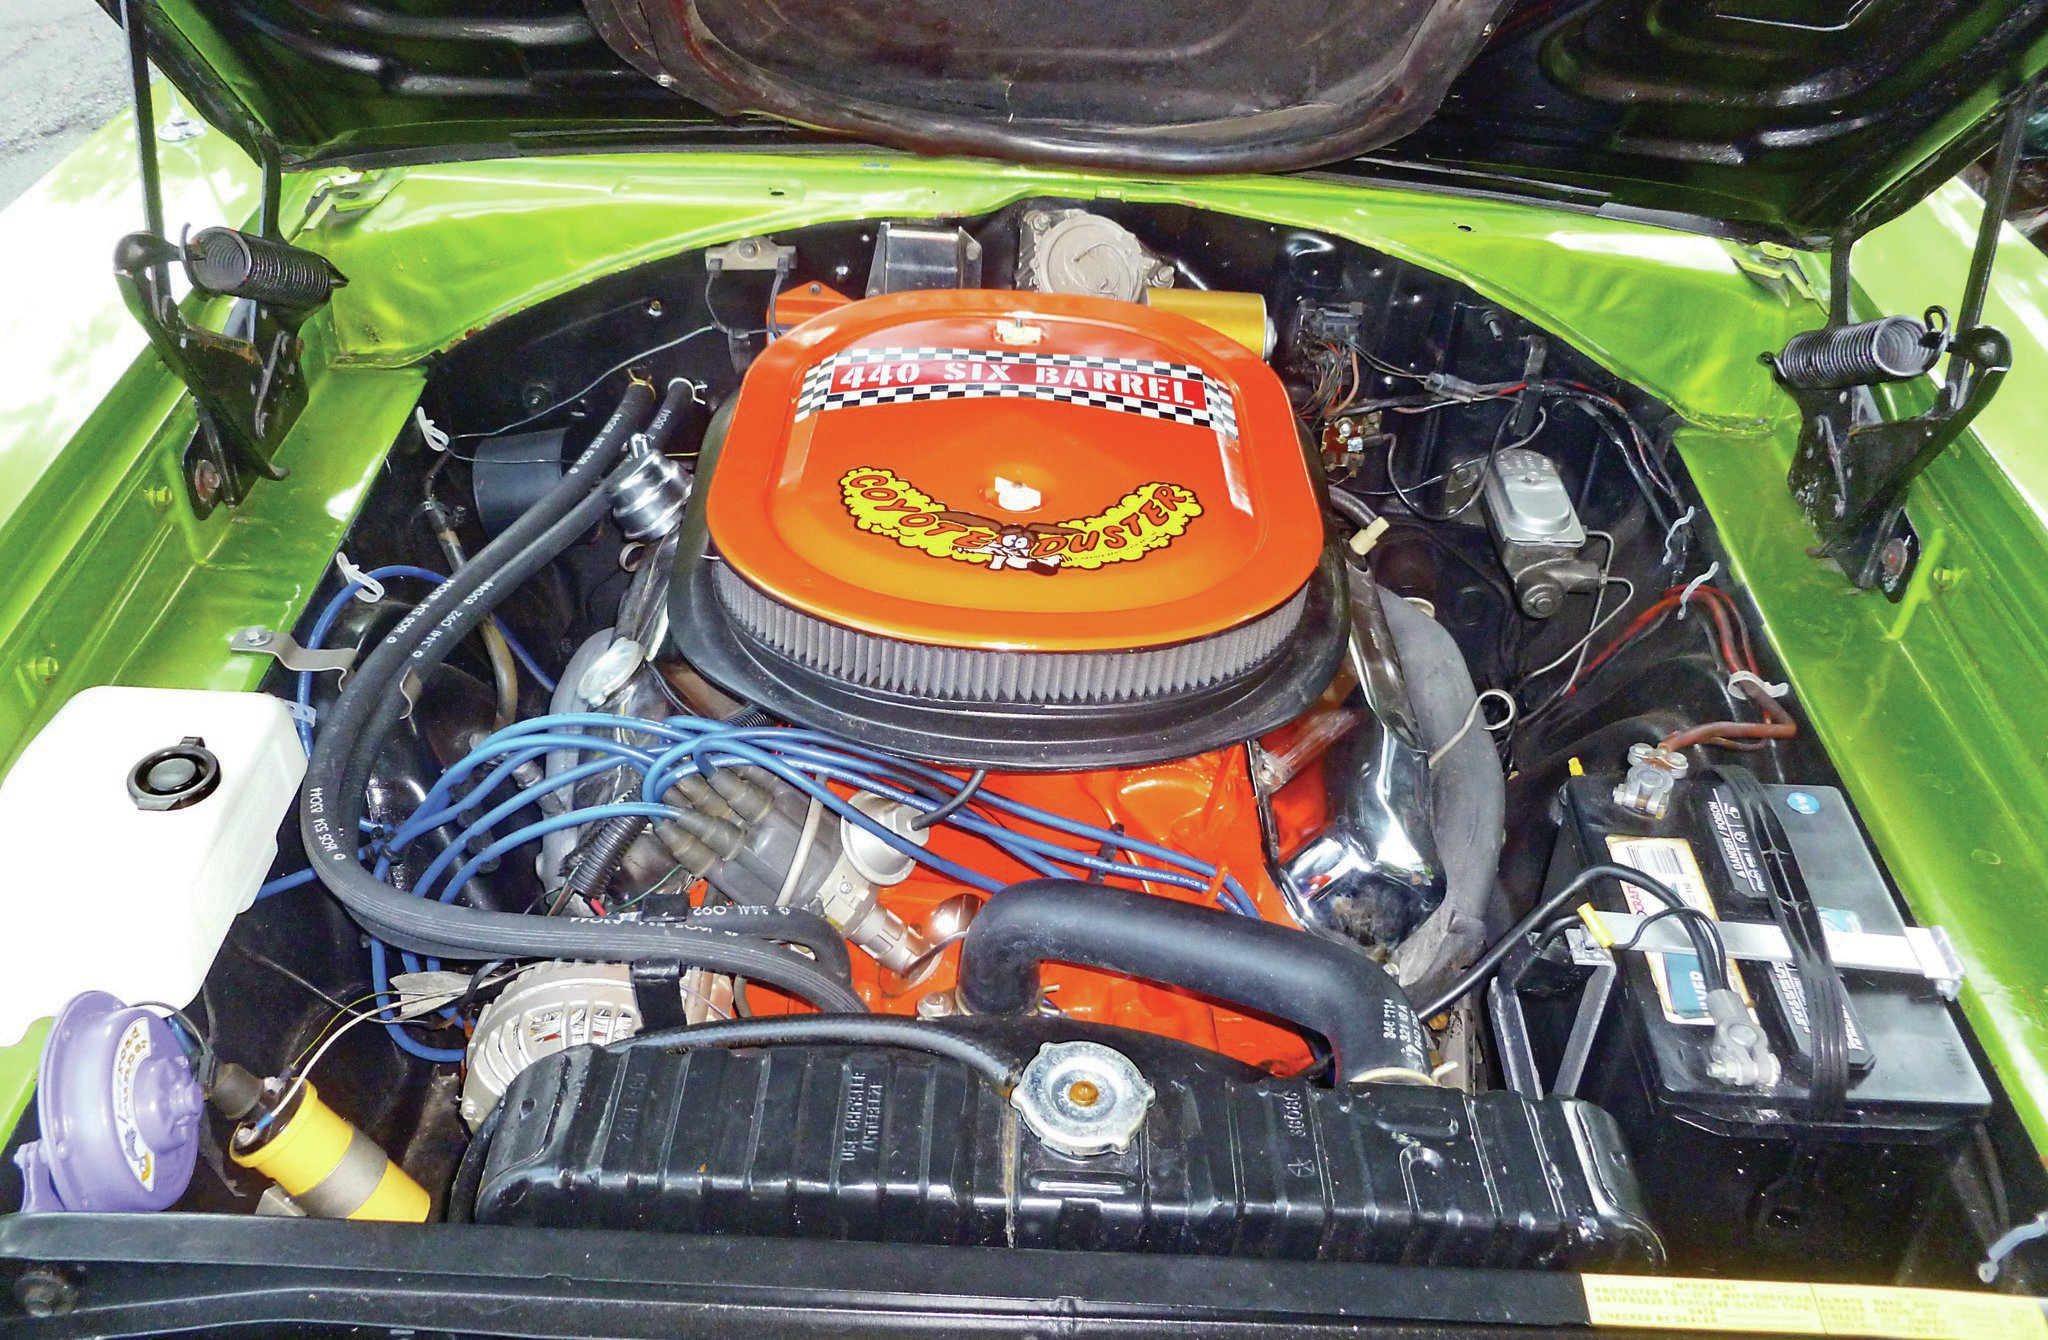 This 1970 Road Runner Has A Sick 440 Six Pack. We're Gonna